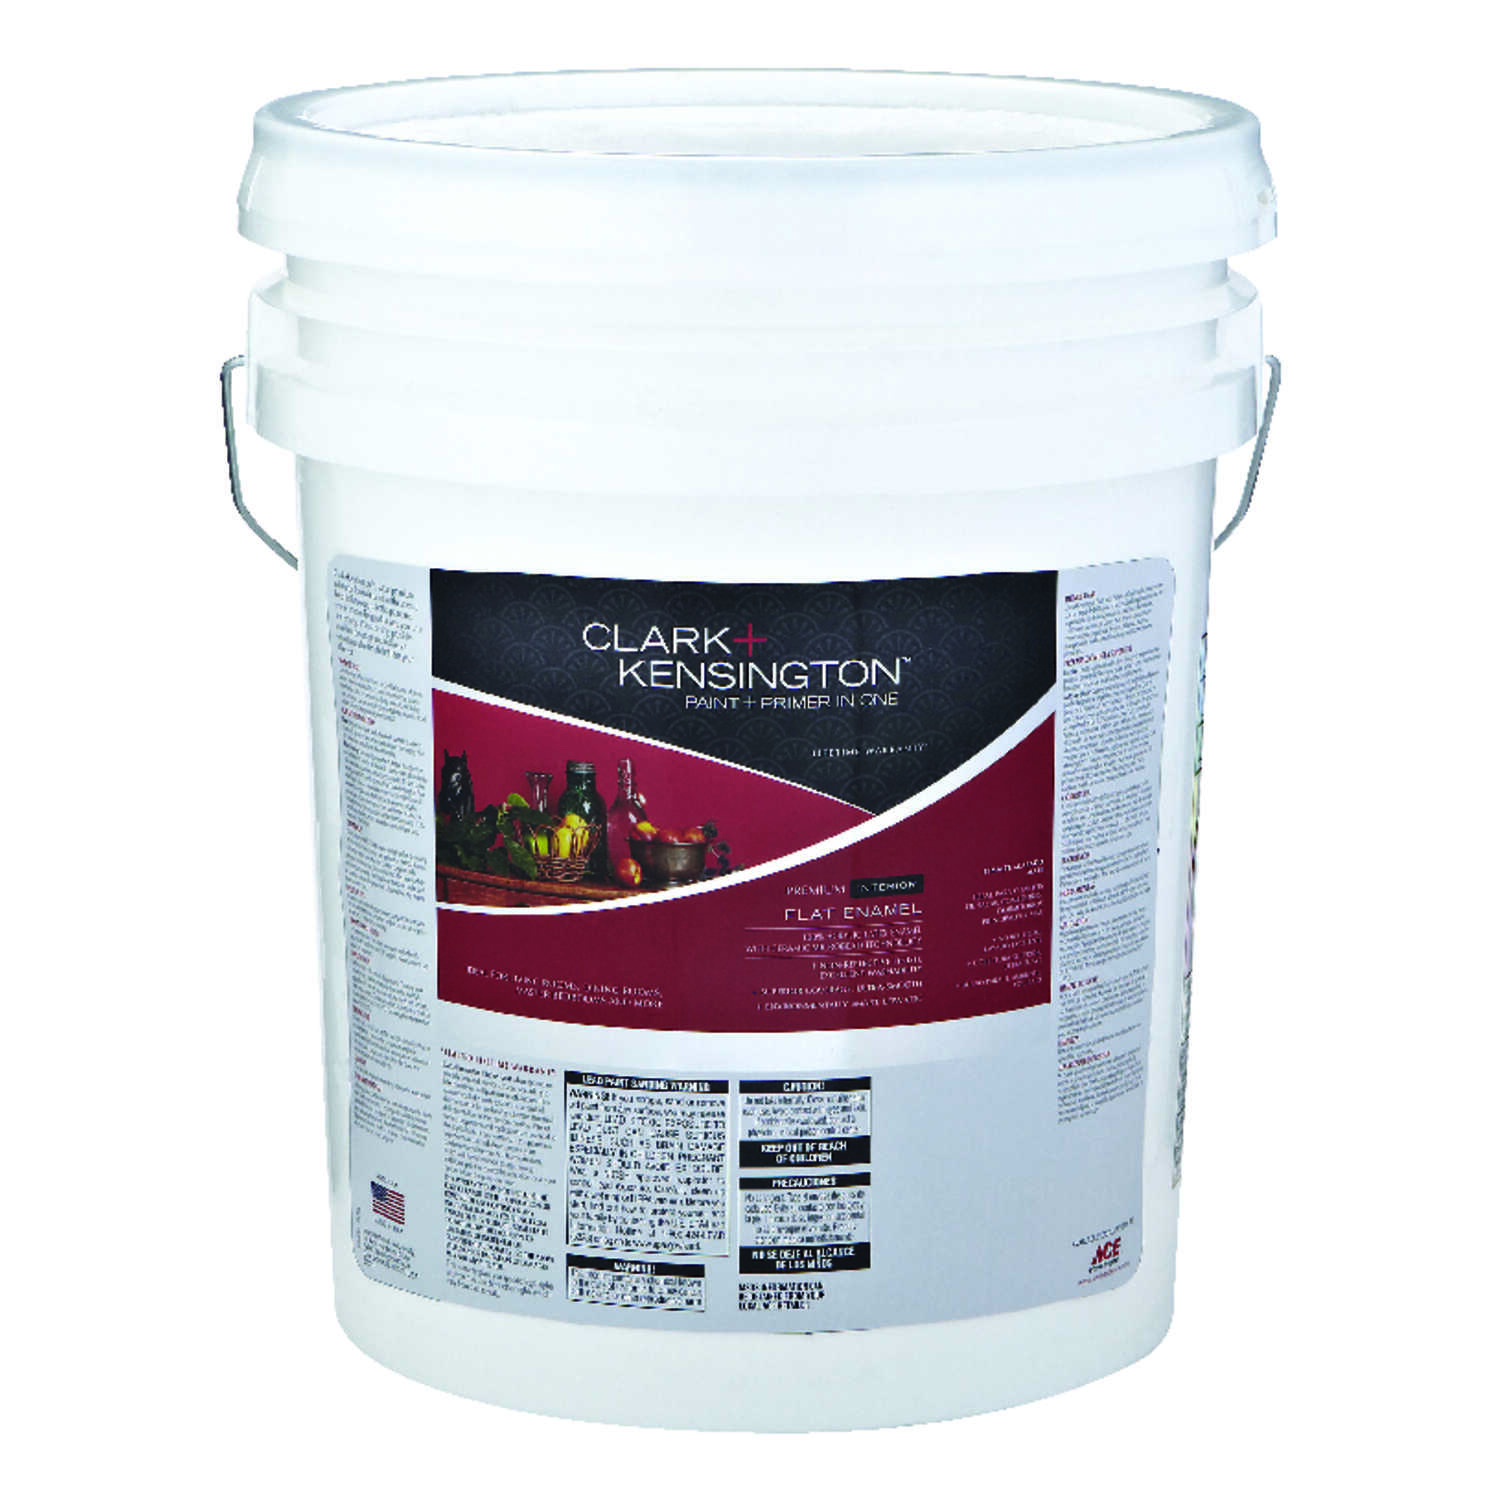 Clark+Kensington  Flat  Tintable Base  5 gal. Mid-Tone High-hide  Paint and Primer